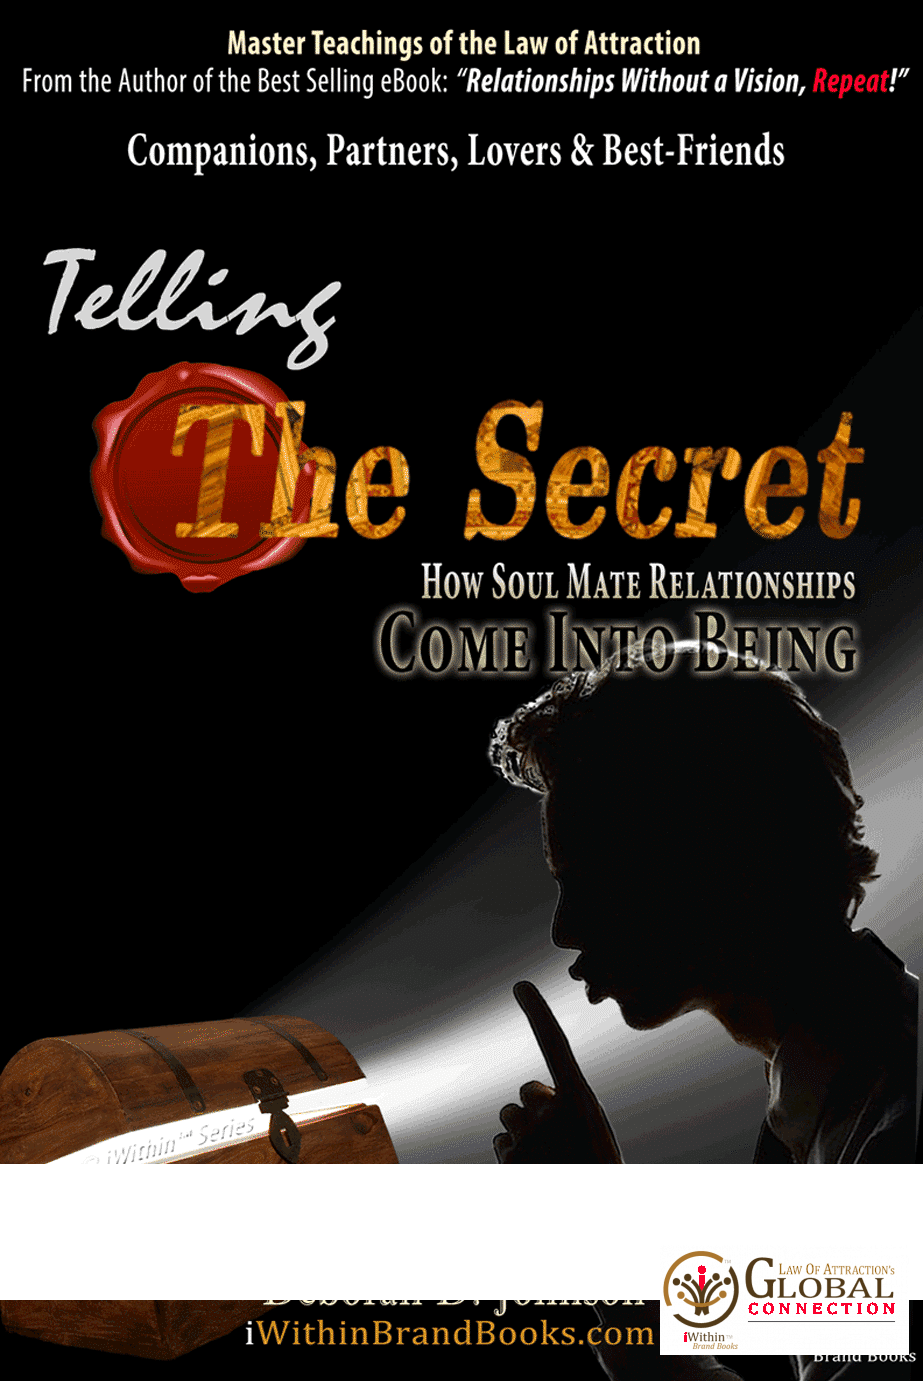 //iwithinbrandbooks.com/wp-content/uploads/2019/08/TELLING-THE-SECRET-FLAT923x1381-MASTER.png